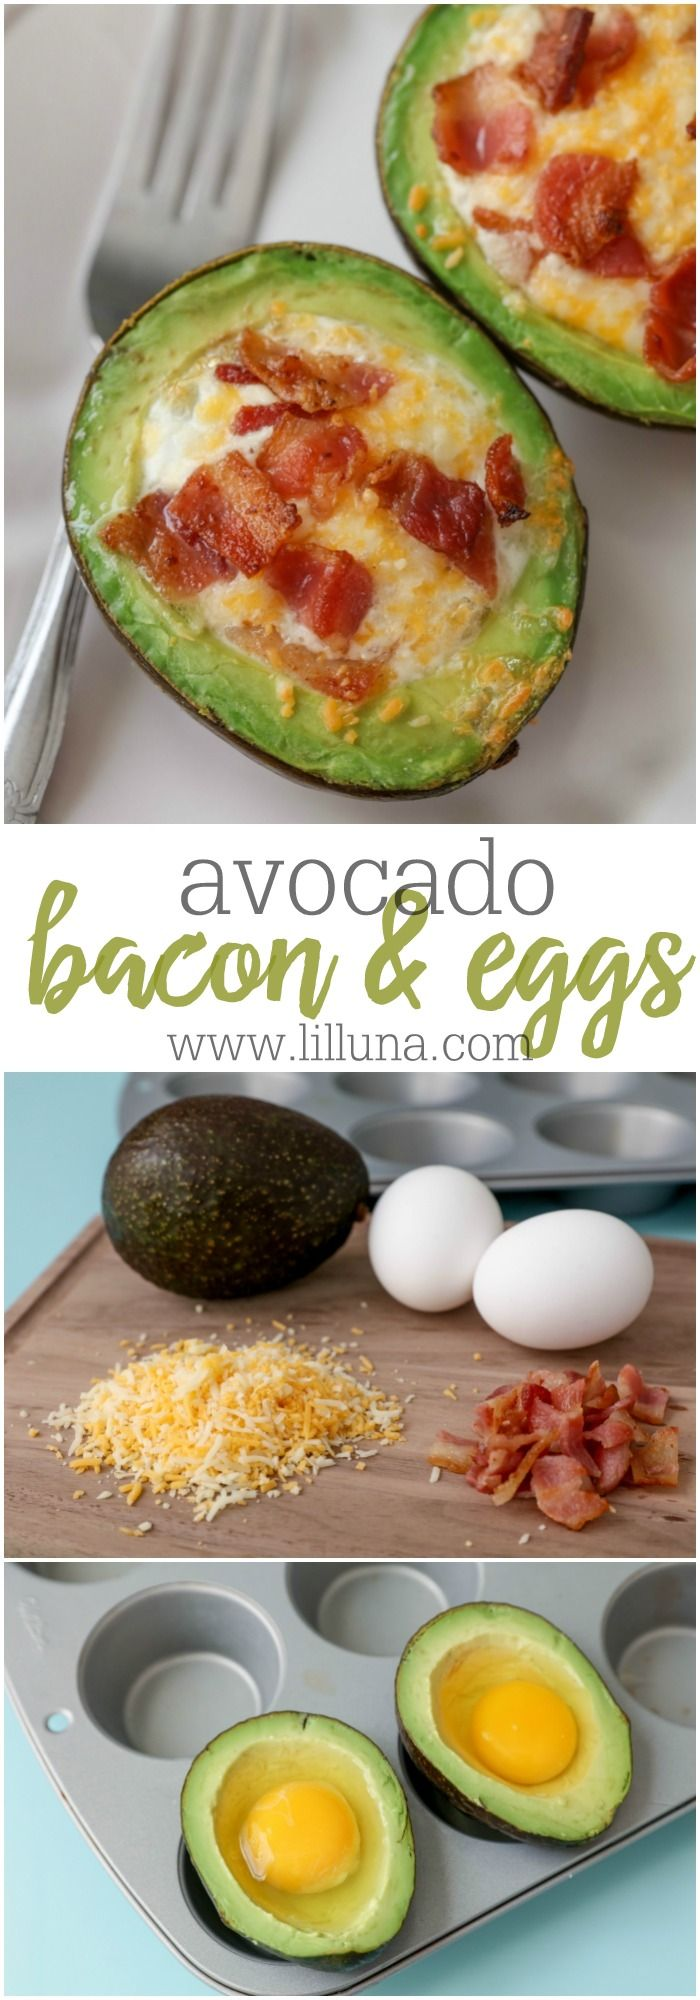 Avocado Bacon and eggs – one of our favorite breakfast recipes. Theyre topped